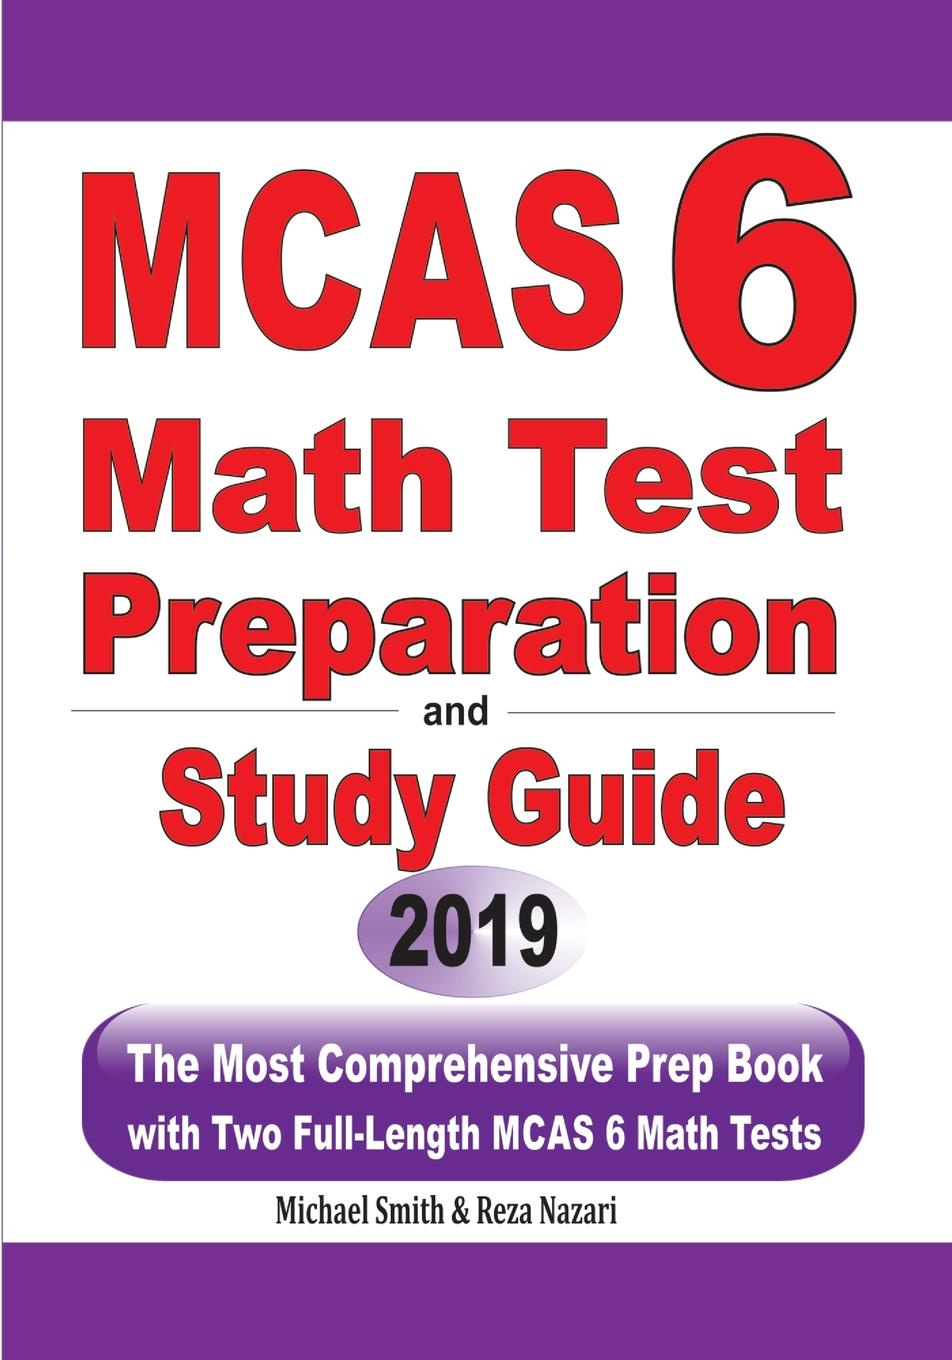 Michael Smith, Reza Nazari MCAS 6 Math Test Preparation and Study Guide. The Most Comprehensive Prep Book with Two Full-Length MCAS Math Tests